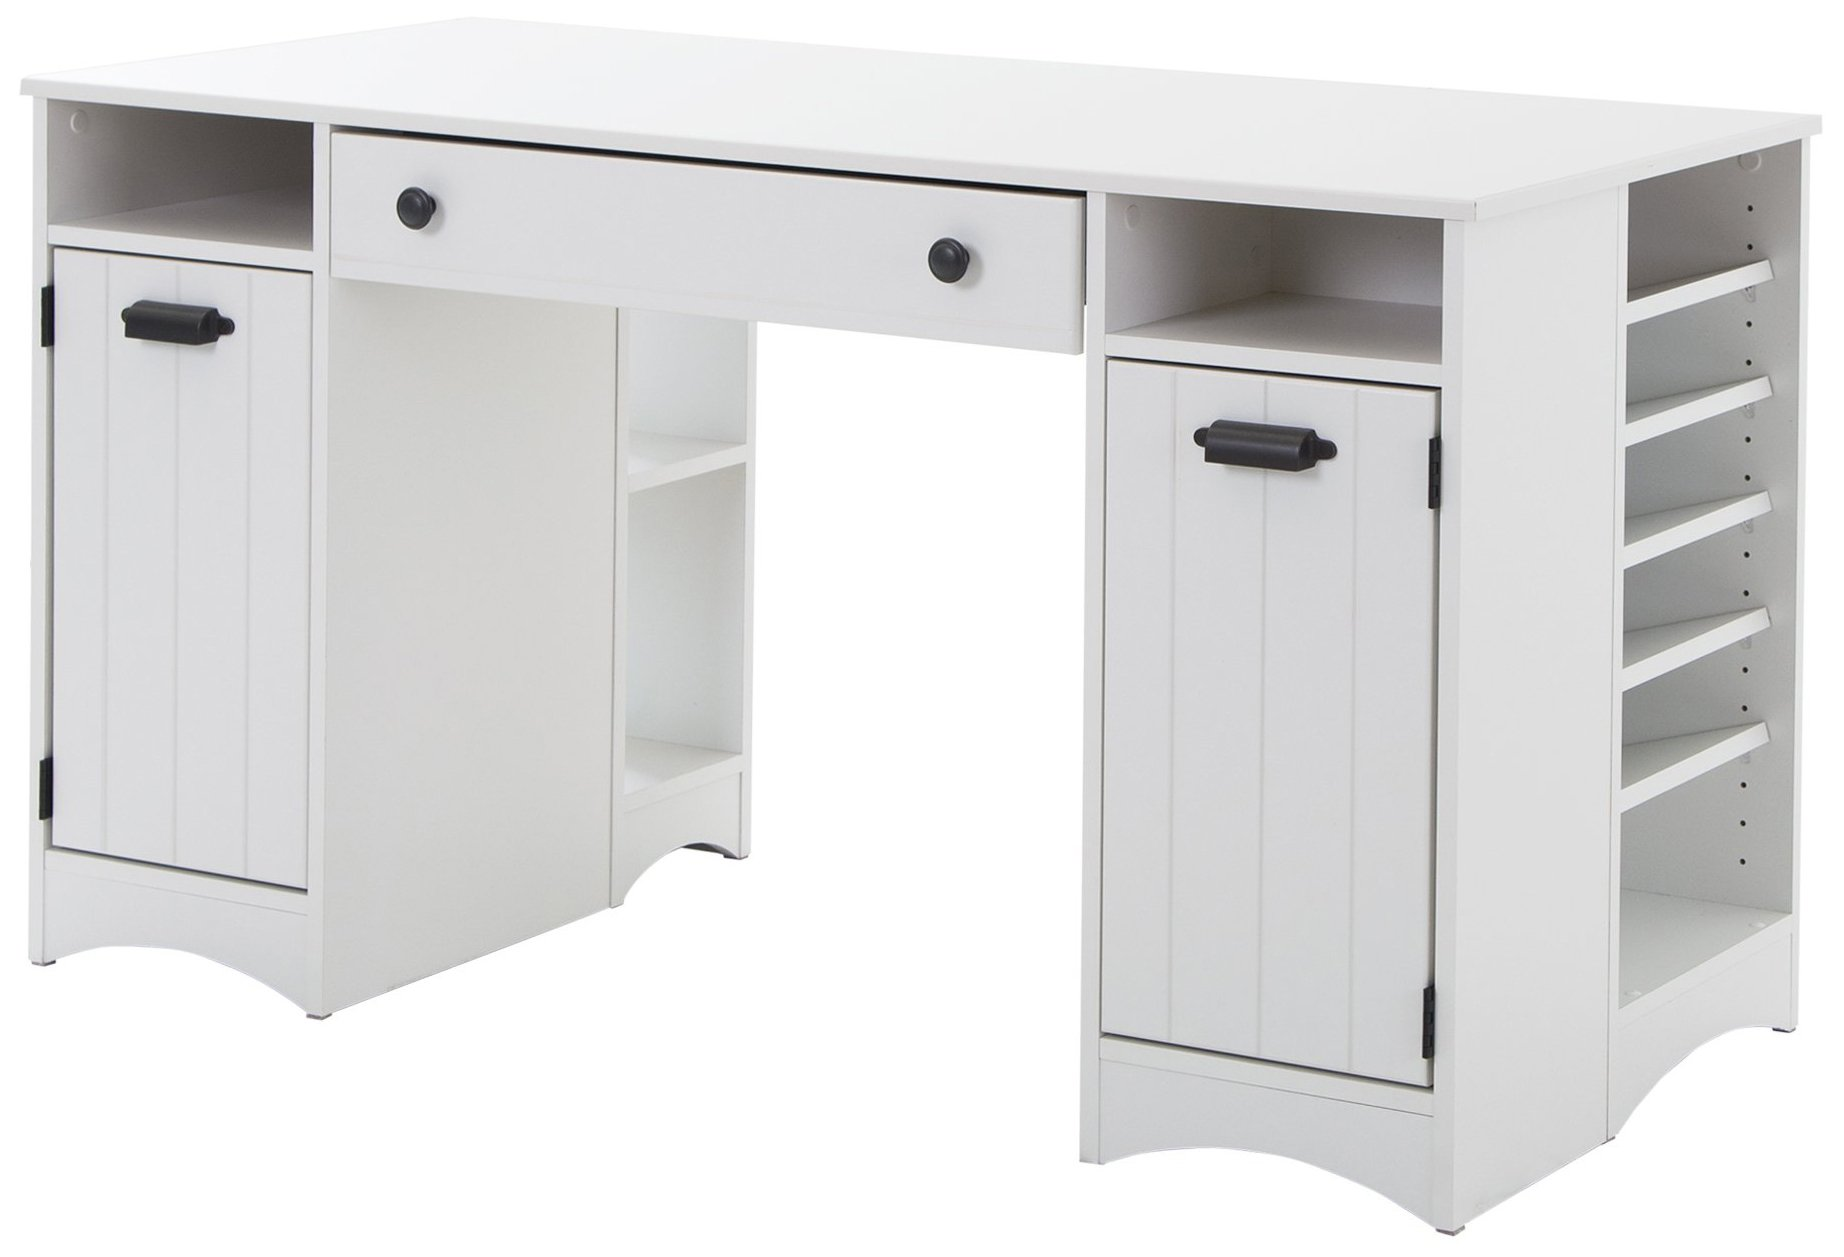 South Shore Artwork Craft Table with Storage - Large Work Surface - Multiple Storage Spaces - Pure White by South Shore